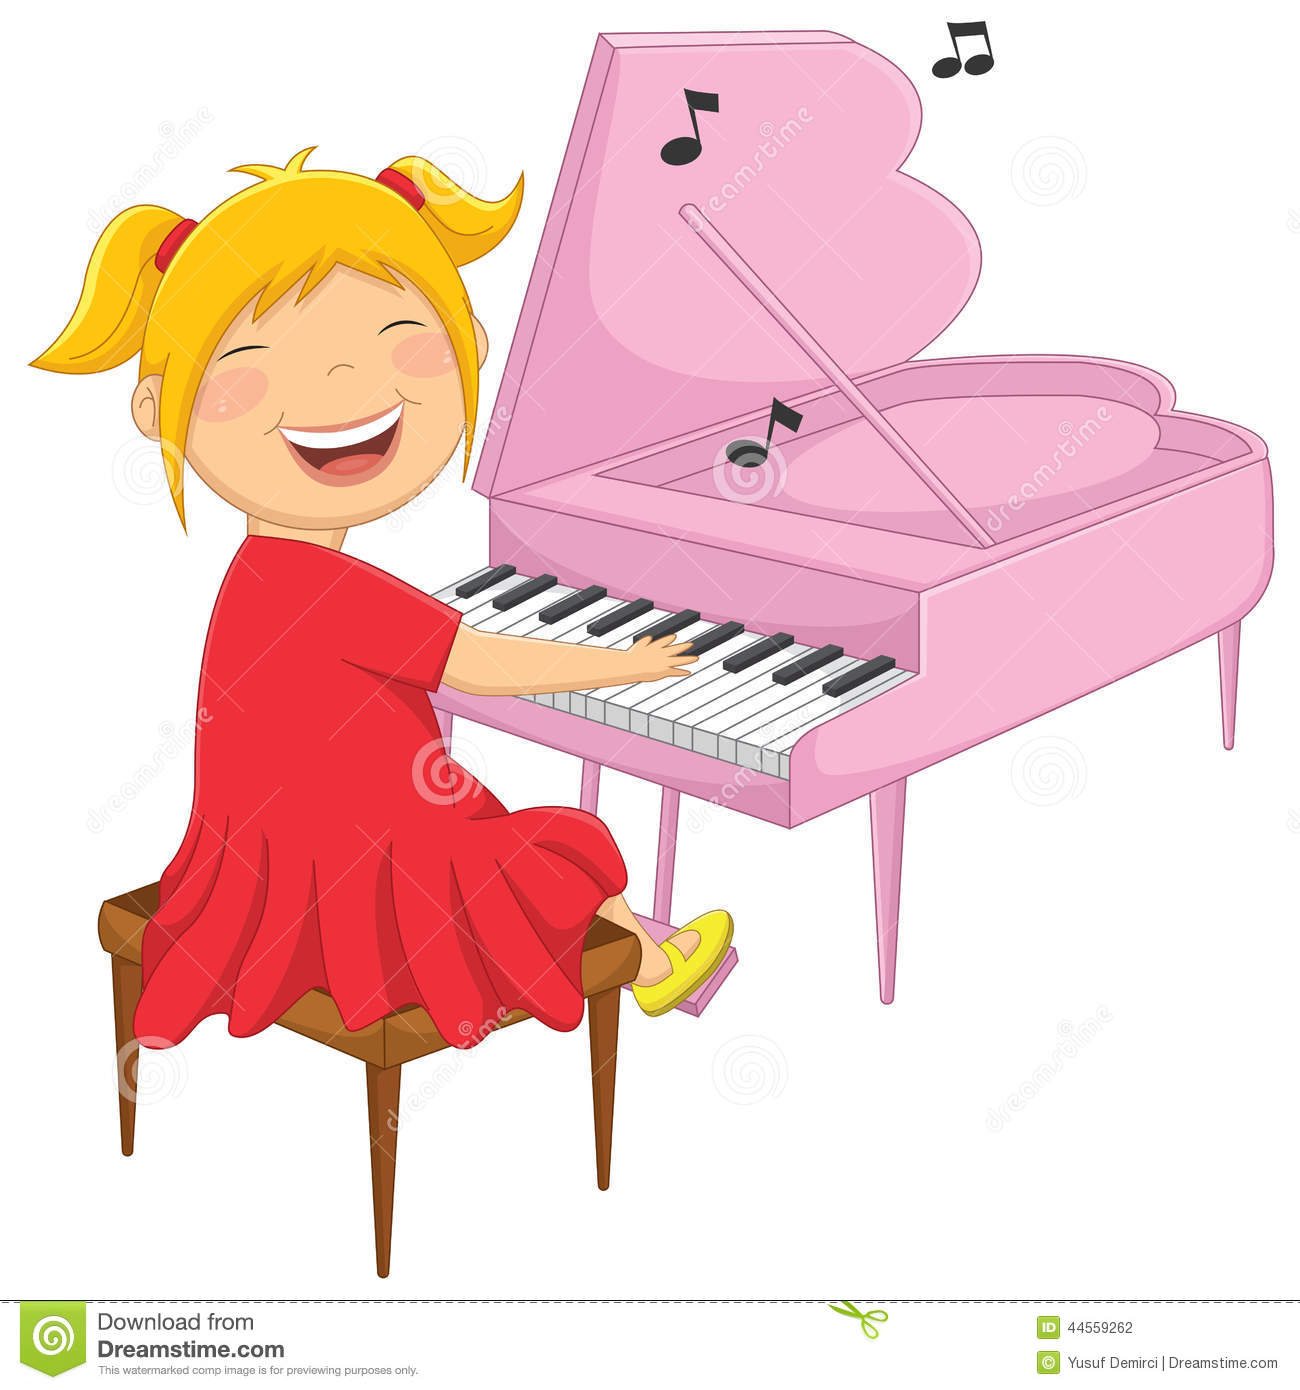 clipart girl playing piano - photo #8